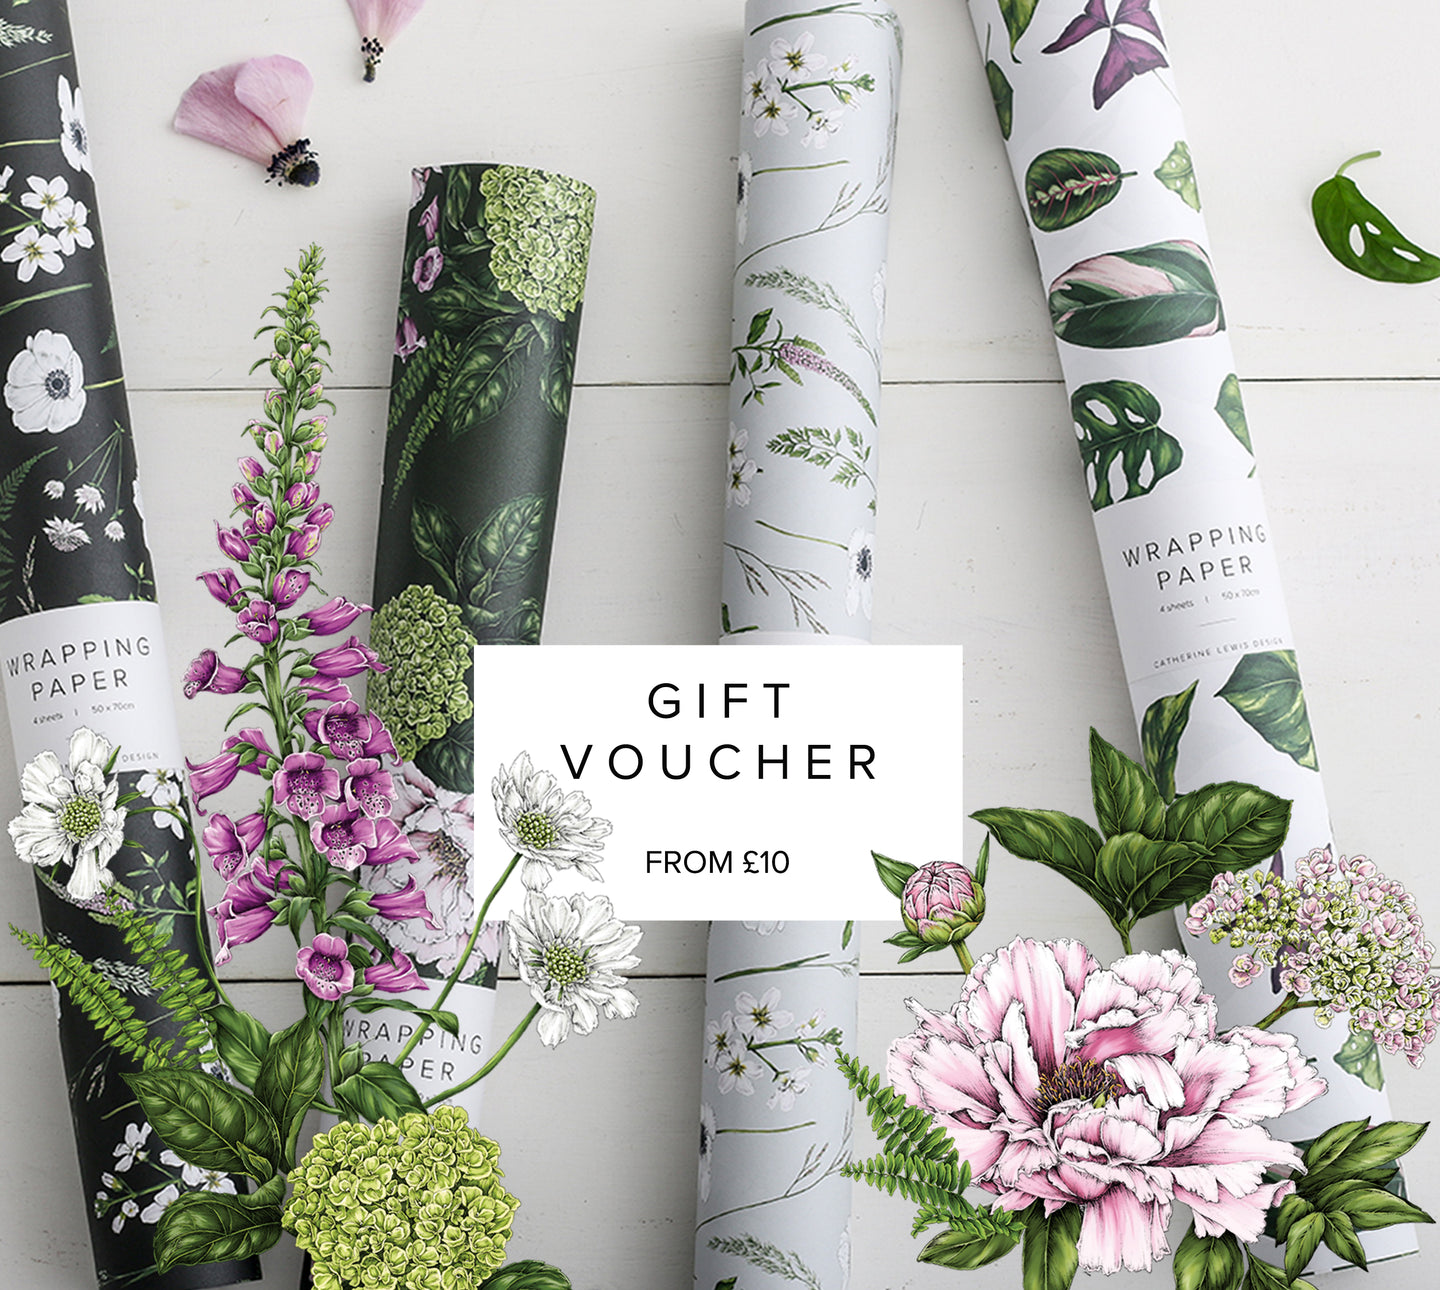 Catherine Lewis Design - Gift Voucher